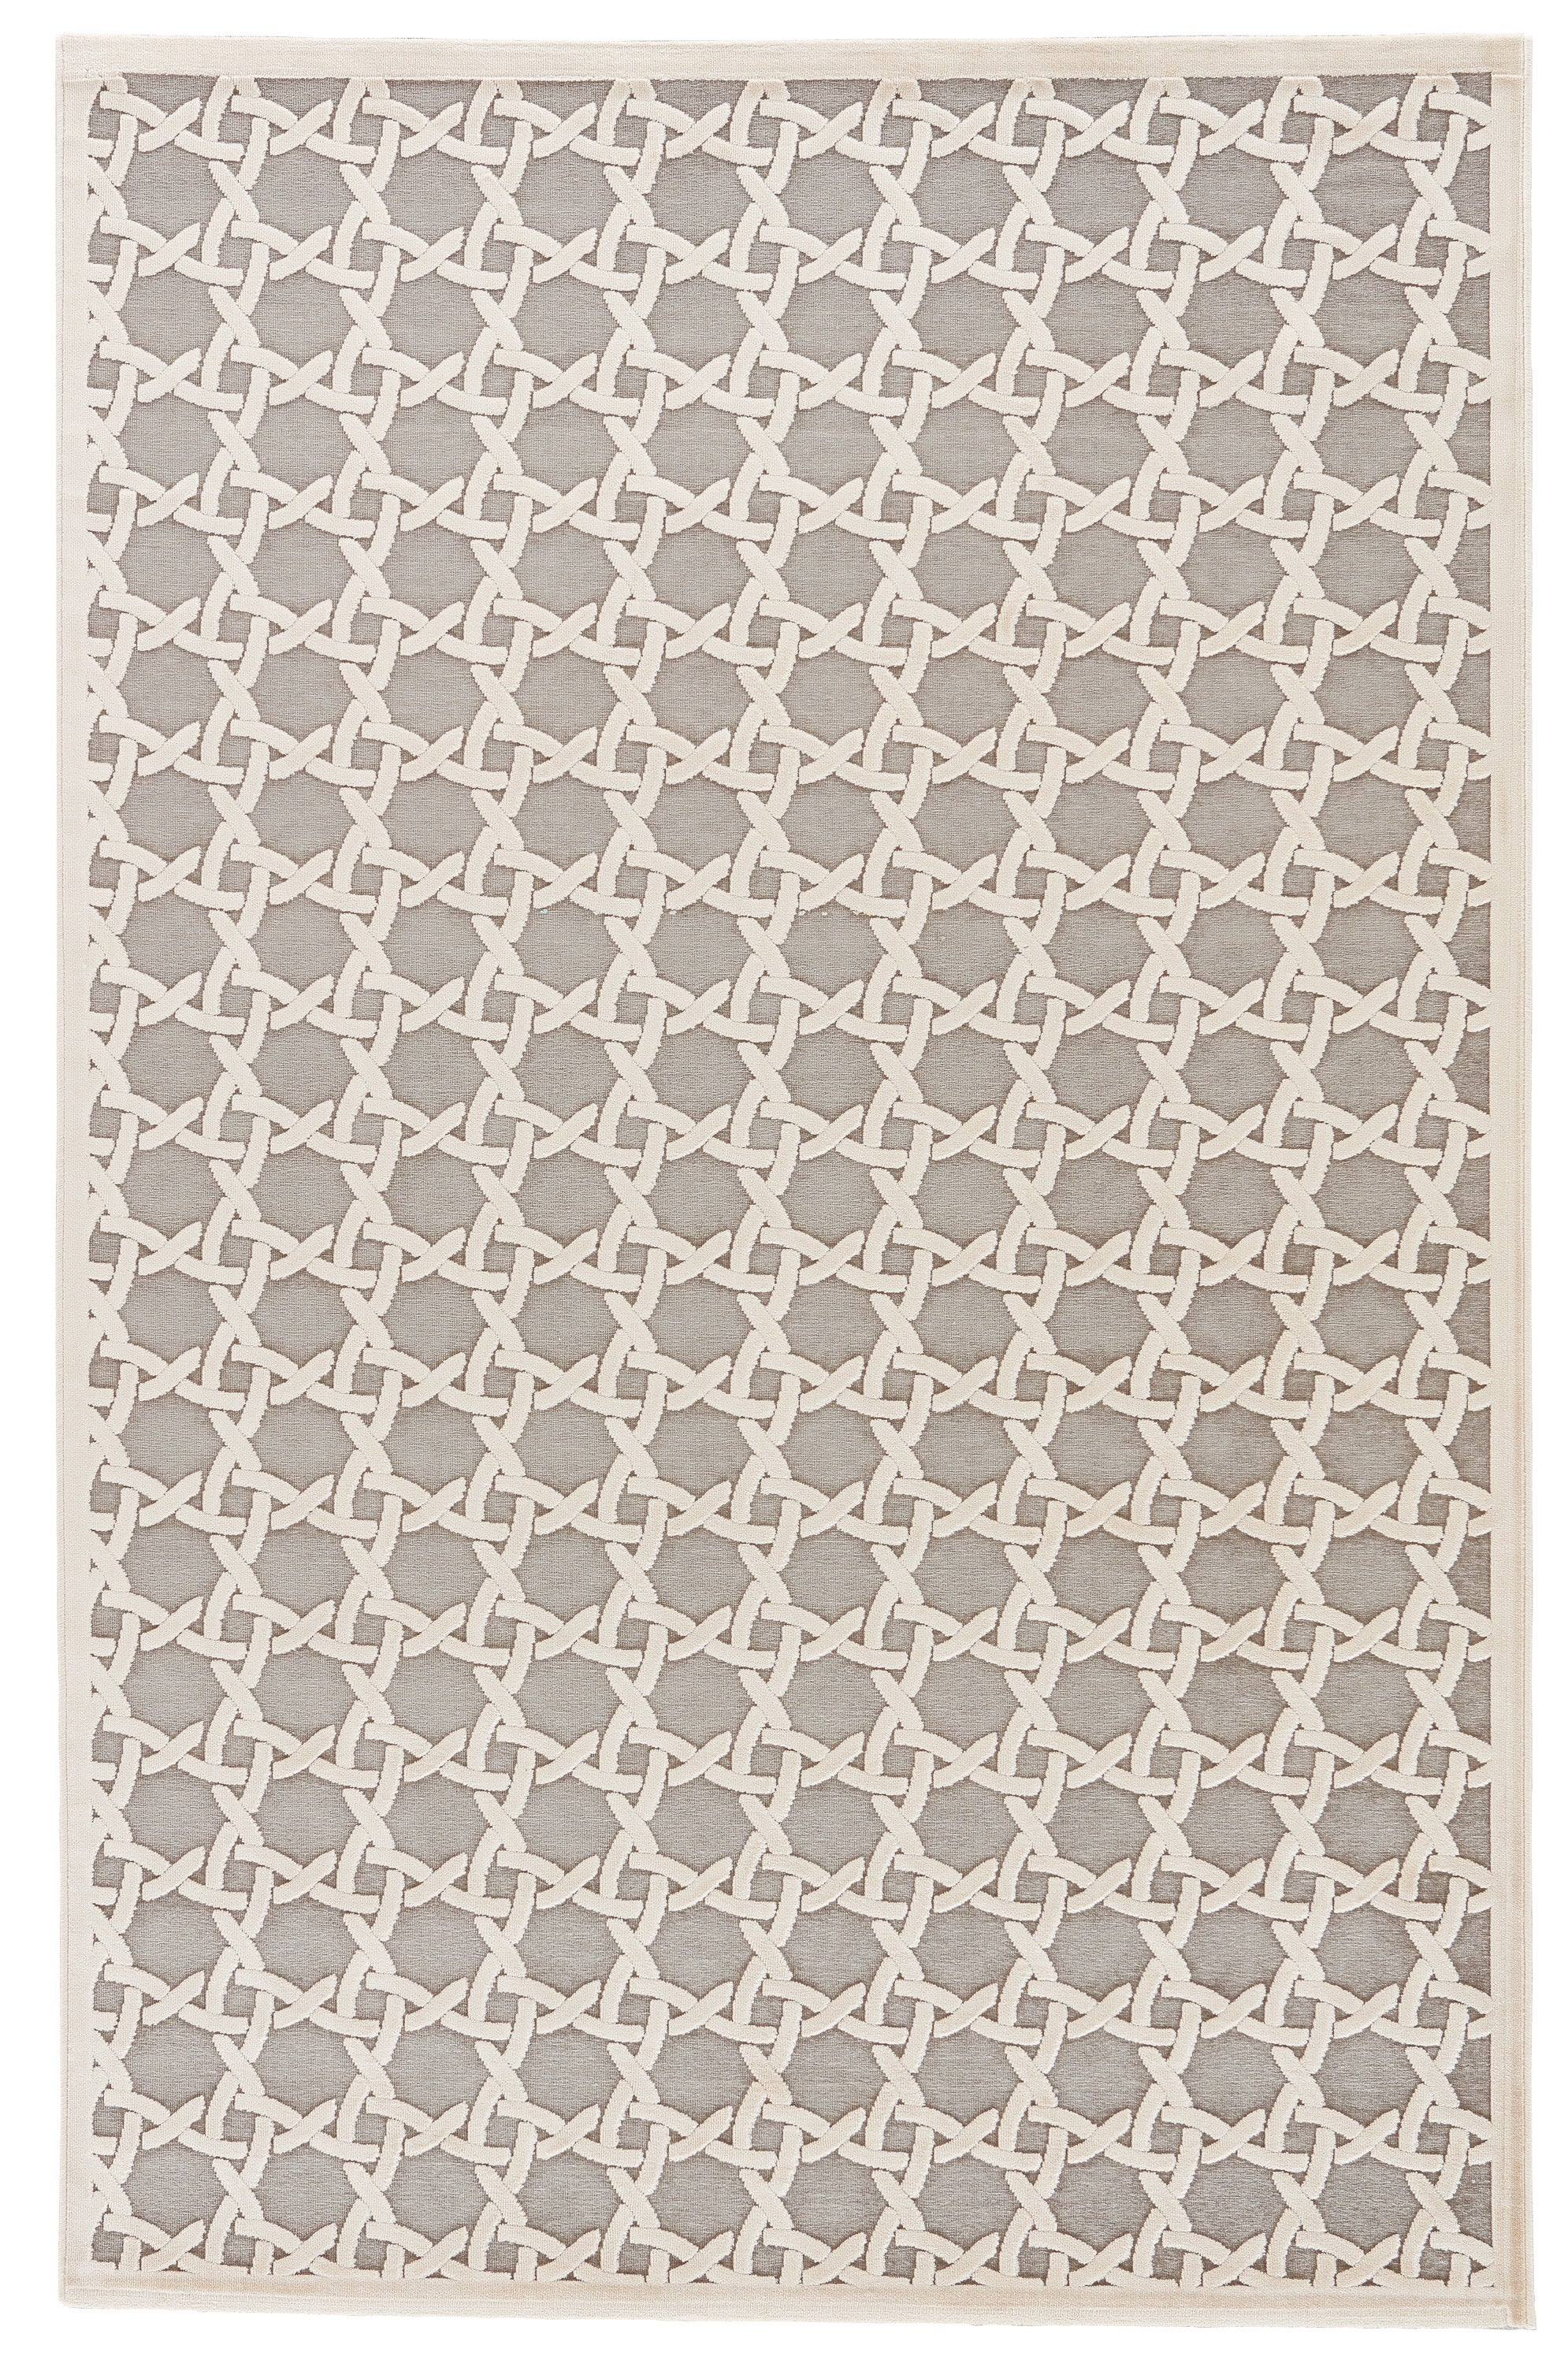 Rectangle, Square White Trellis Machine Made Synthetics Contemporary recommended for Kitchen, Bedroom, Bathroom, Dining Room, Office, Hallway, Living Room